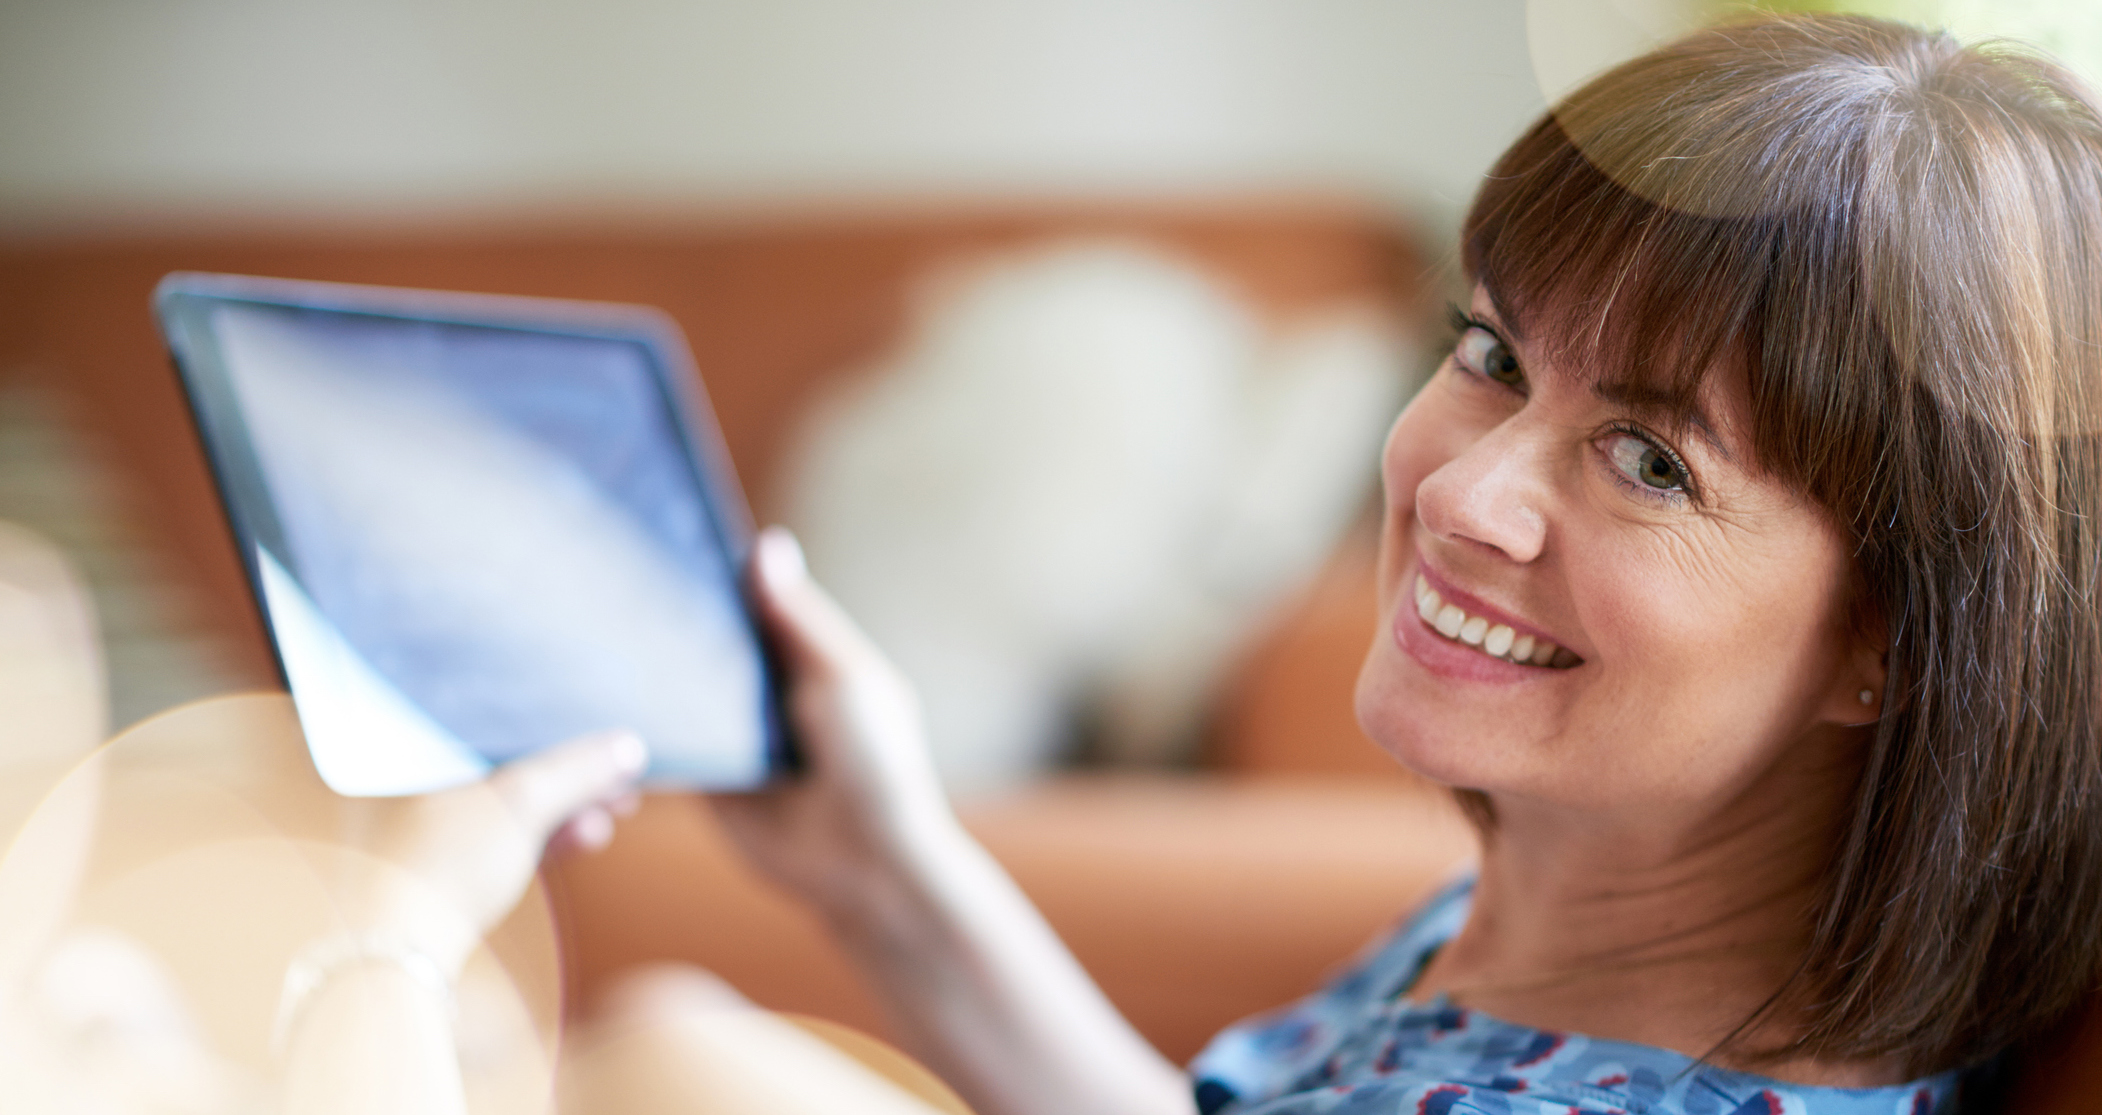 Happy women with a digital tablet in her hand